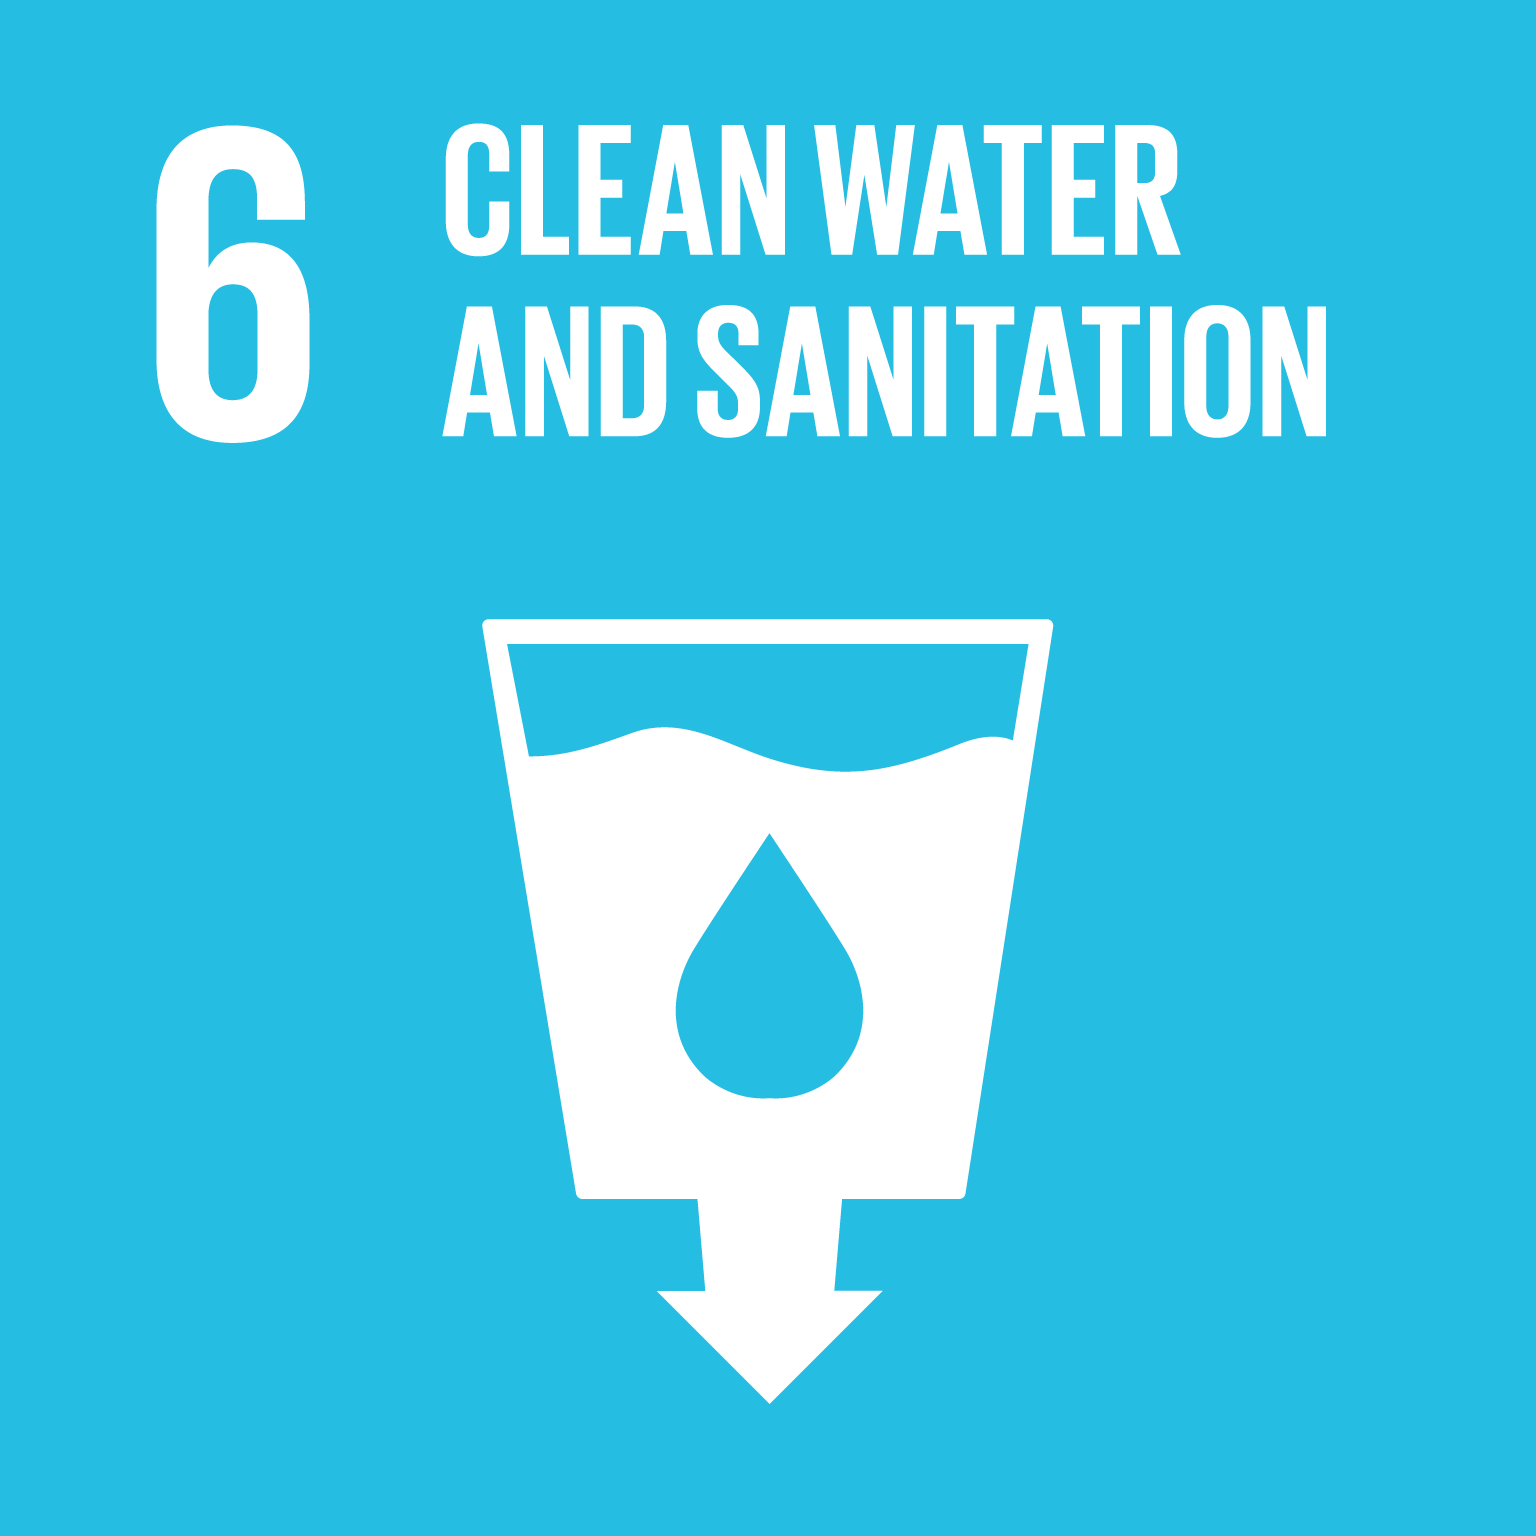 【SDGs logo】CLEAN WATER AND SANITATION